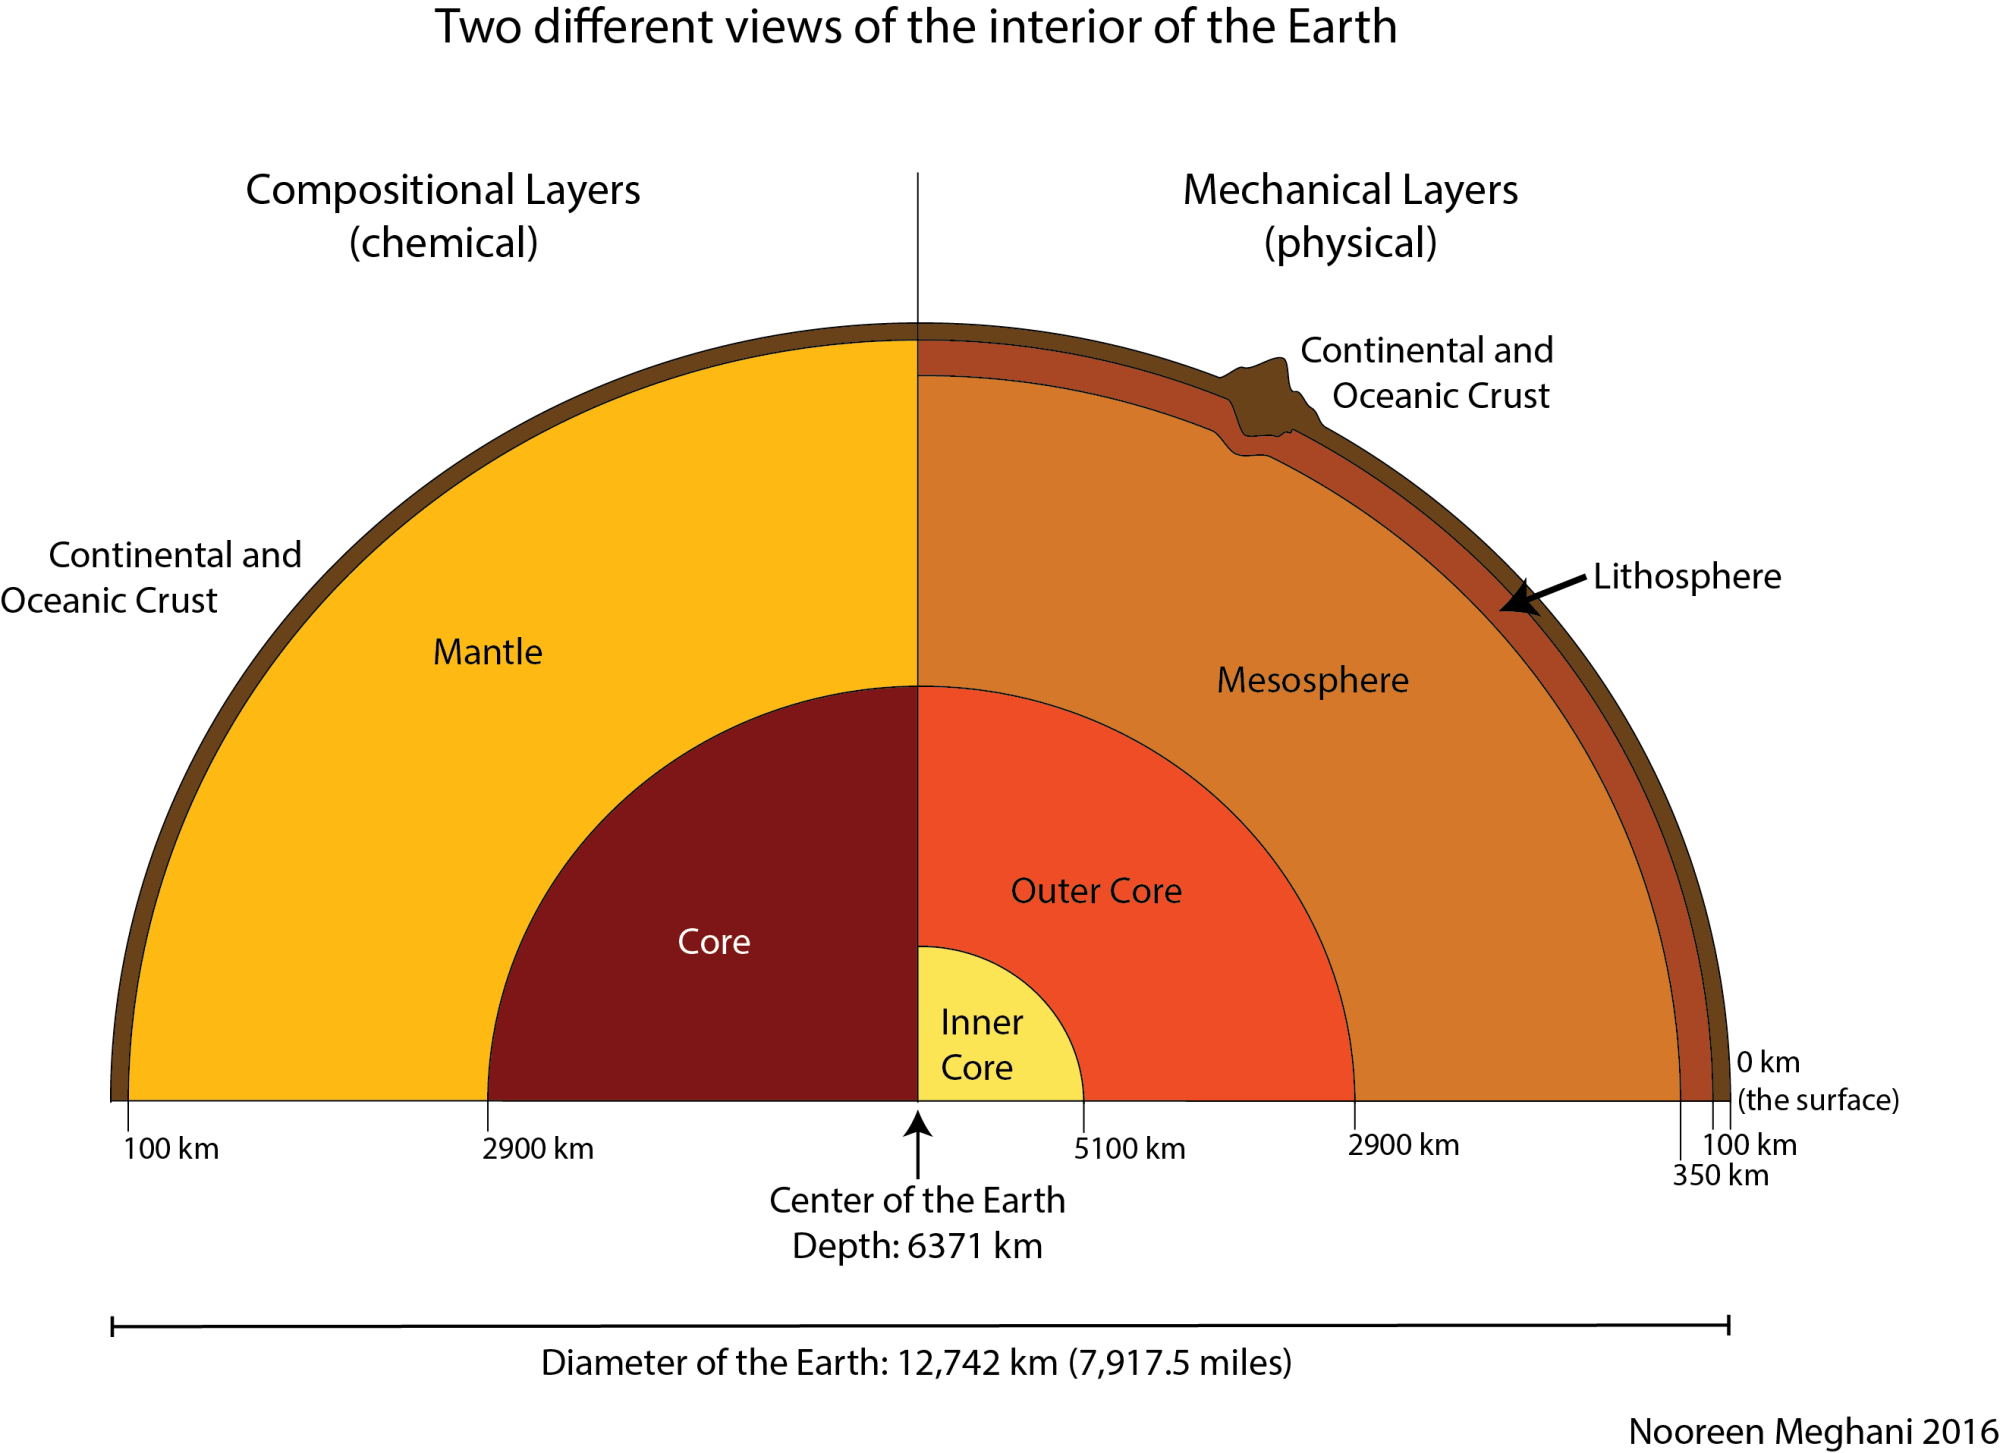 hight resolution of the structure of the earth marcellus community science draw a diagram showing the structure of the earth diagram showing the layers of the earth